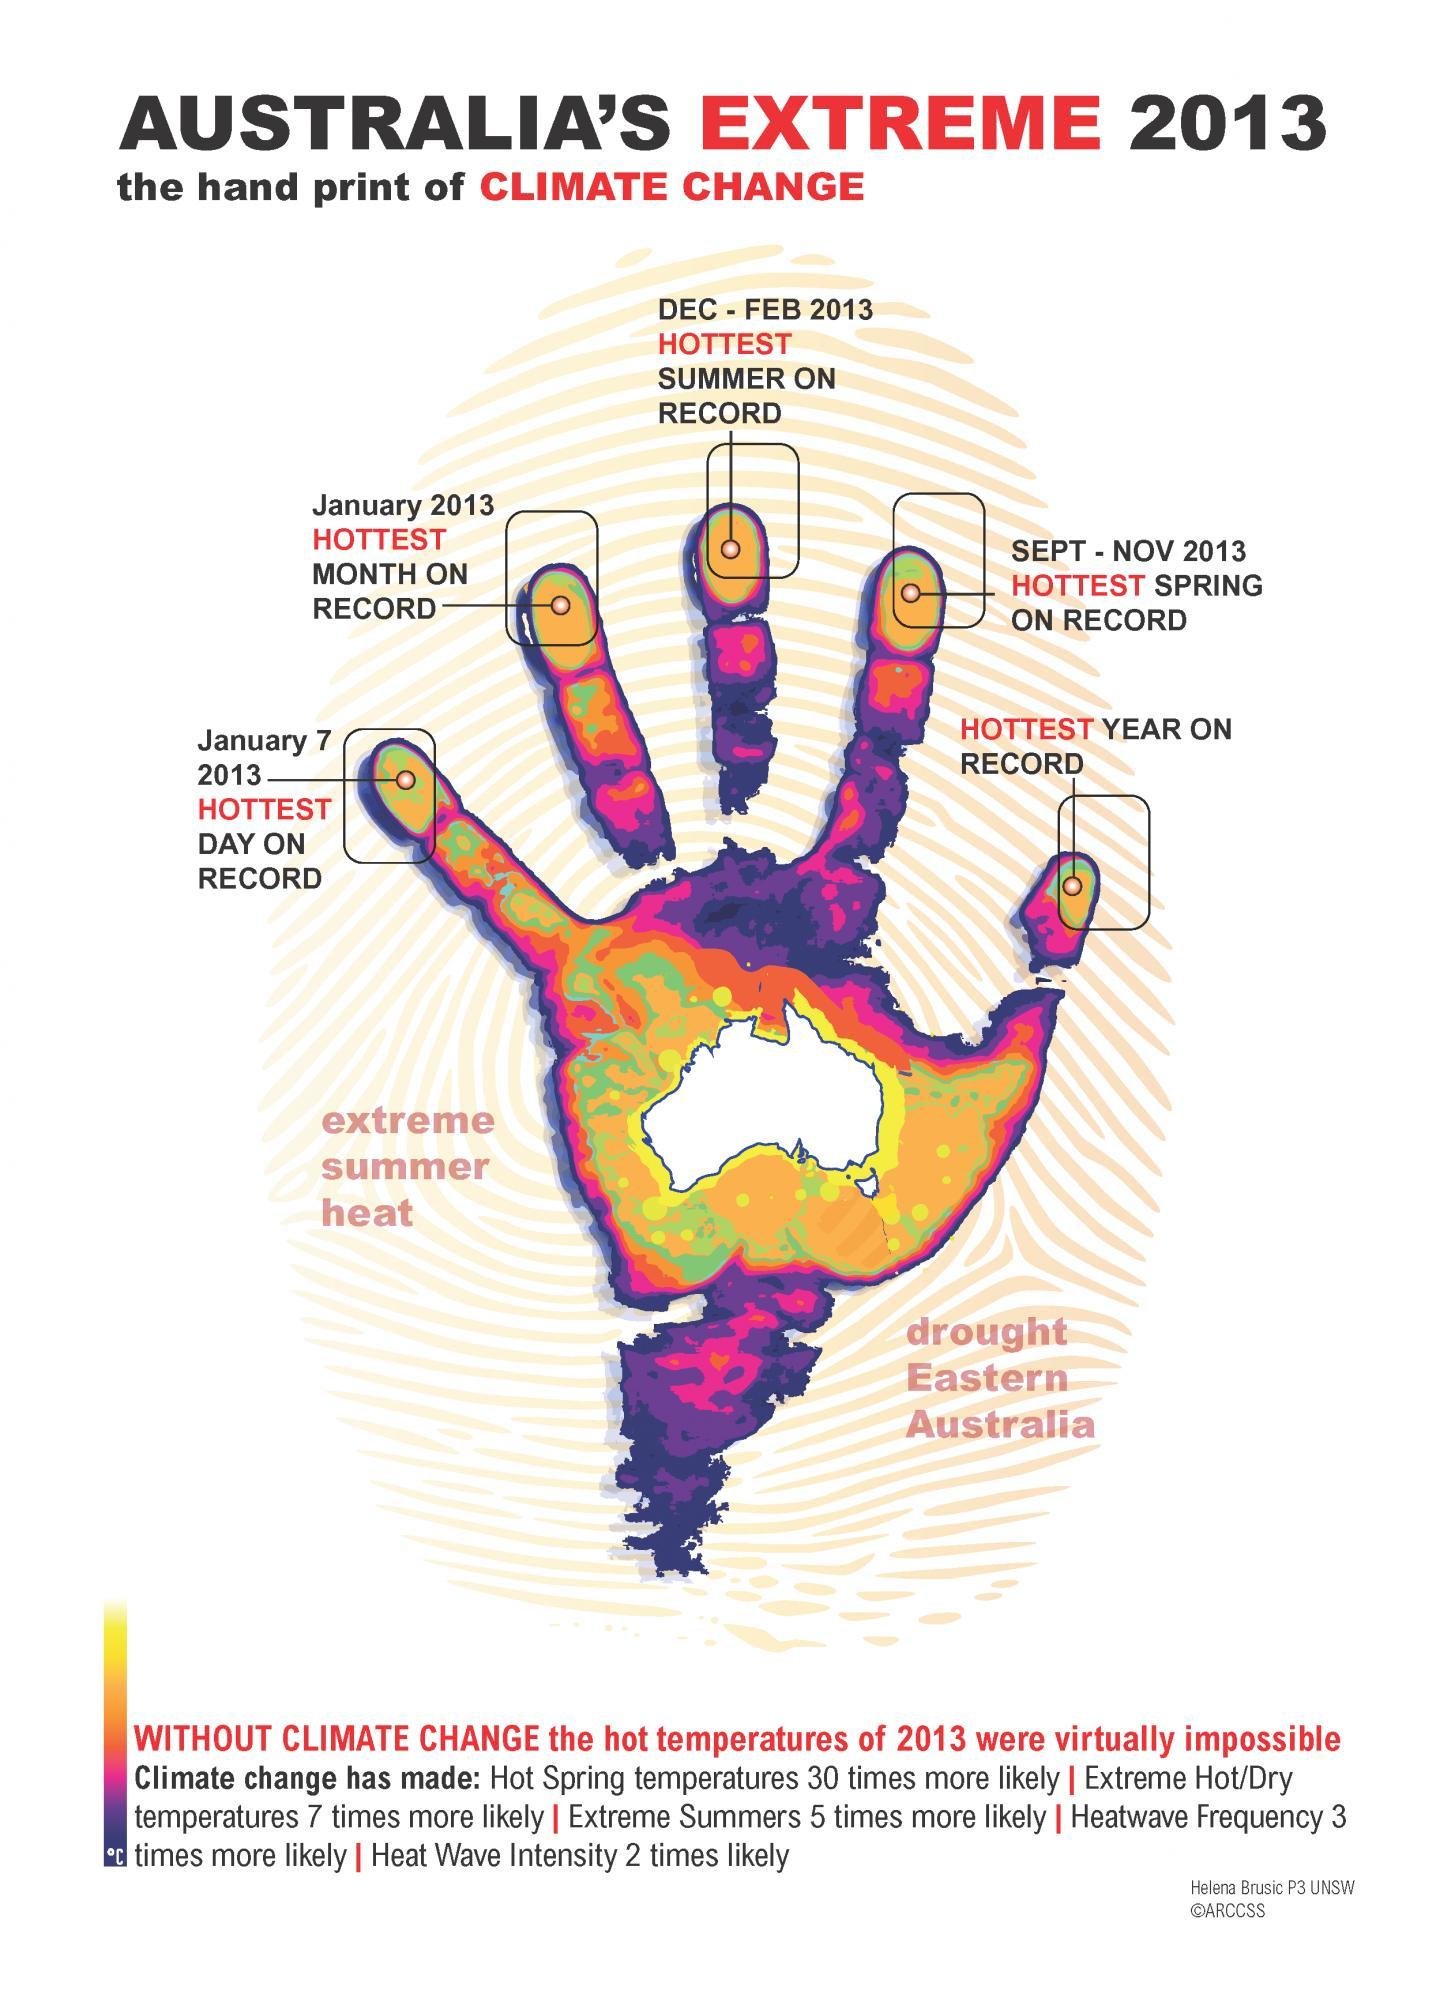 Climate detectives reveal handprint of human caused climate change in Australia